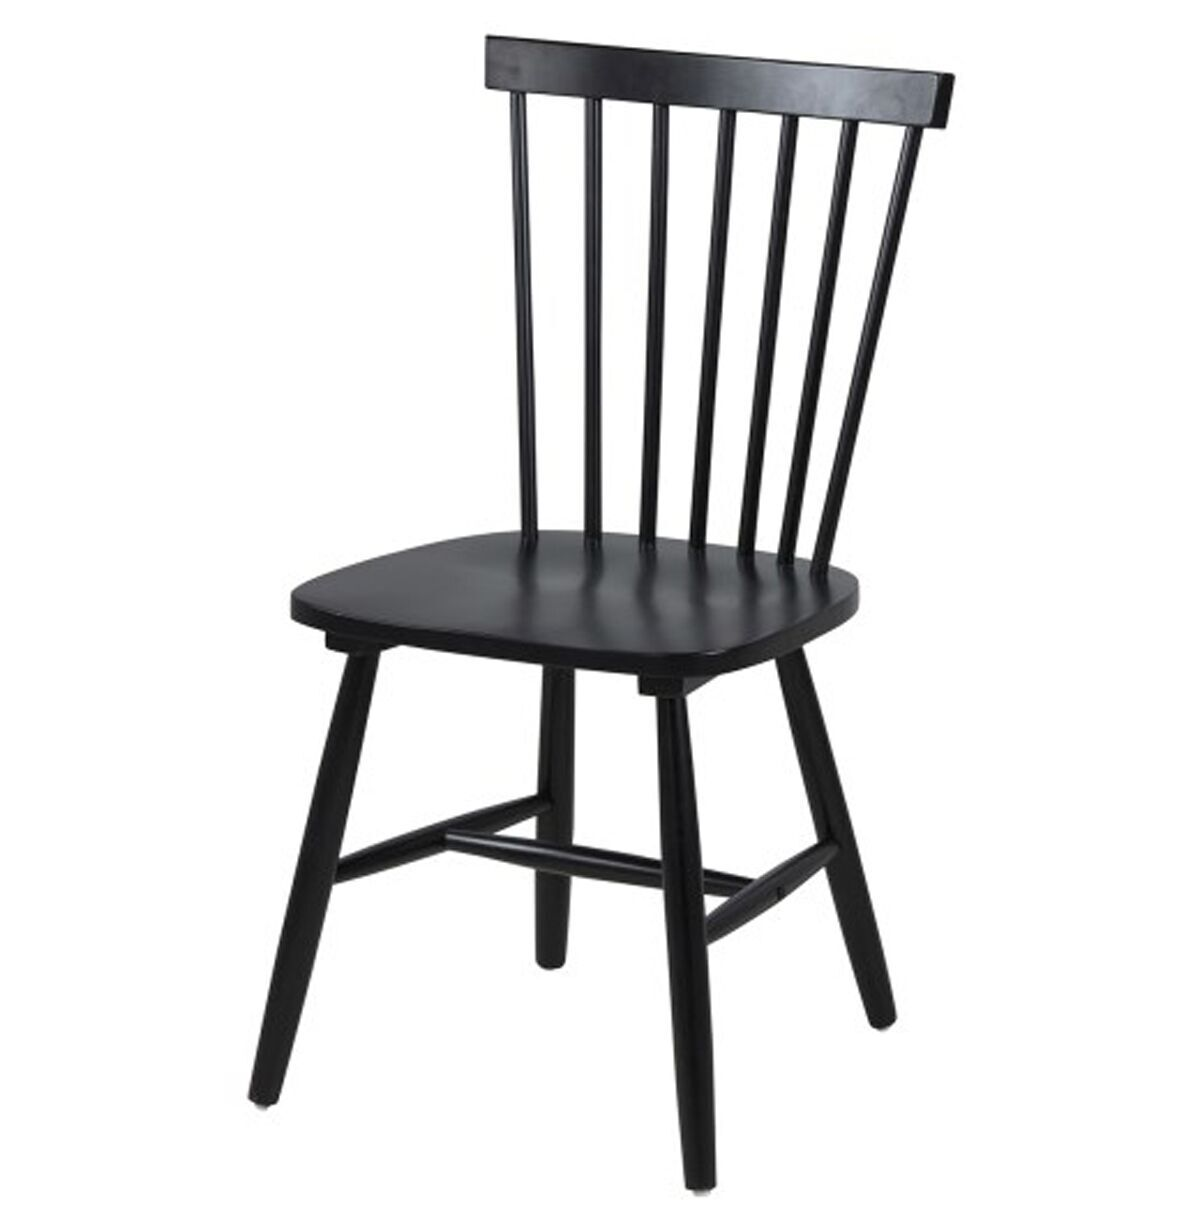 Riano Slatted Black Dining Chair